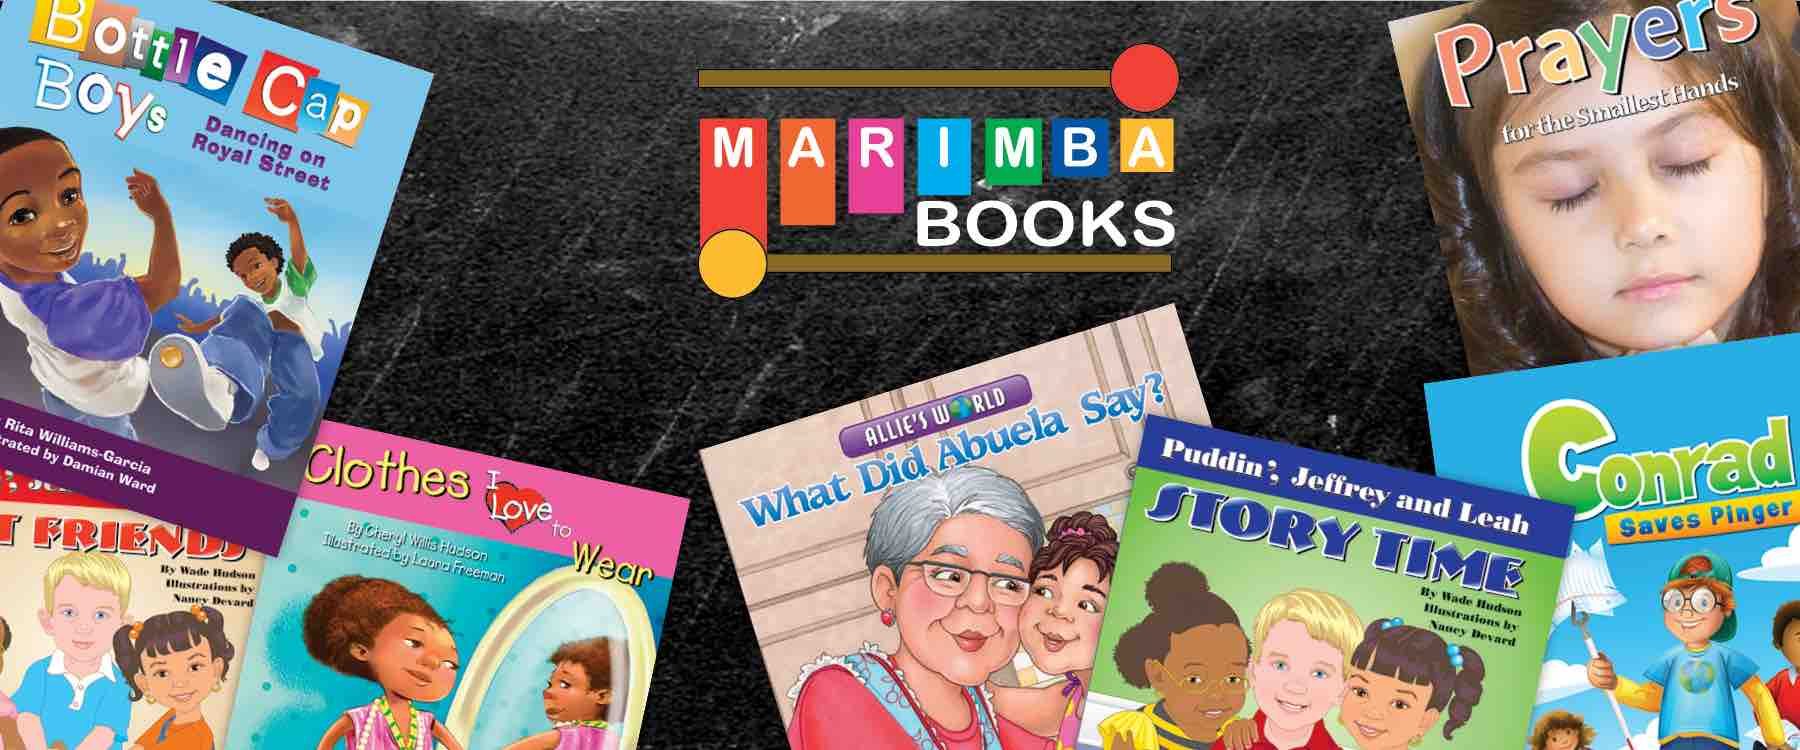 banners-just-us-books-about-marimba-books.jpg